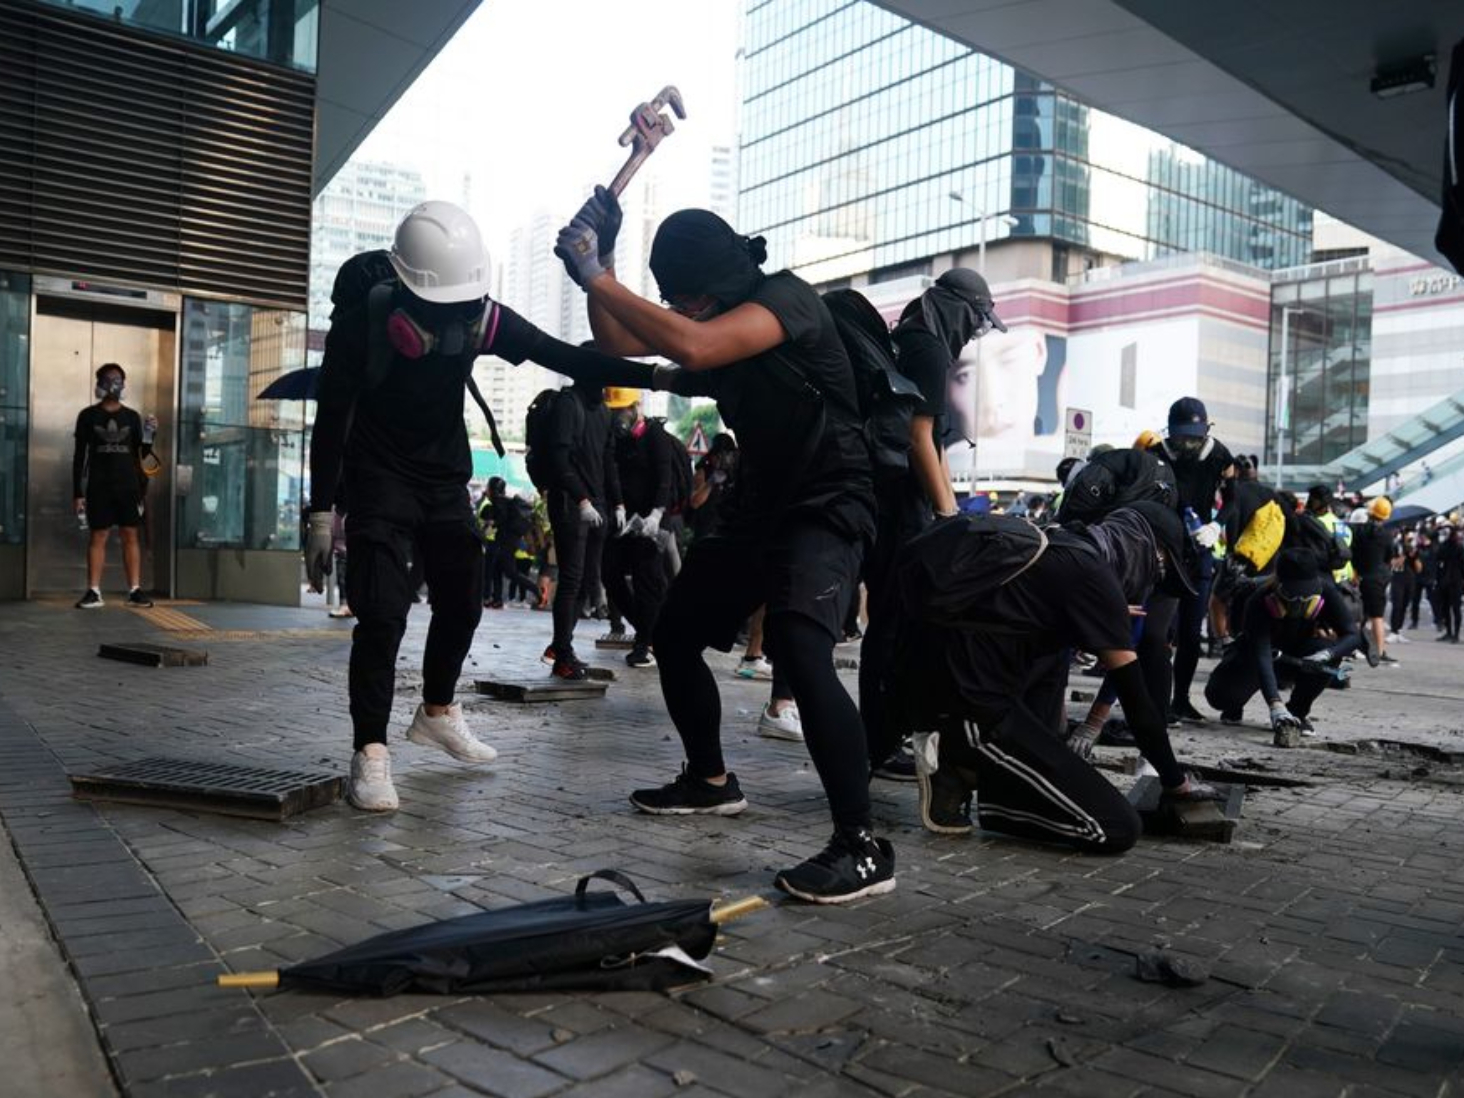 8,986 persons arrested in social unrest in Hong Kong: police